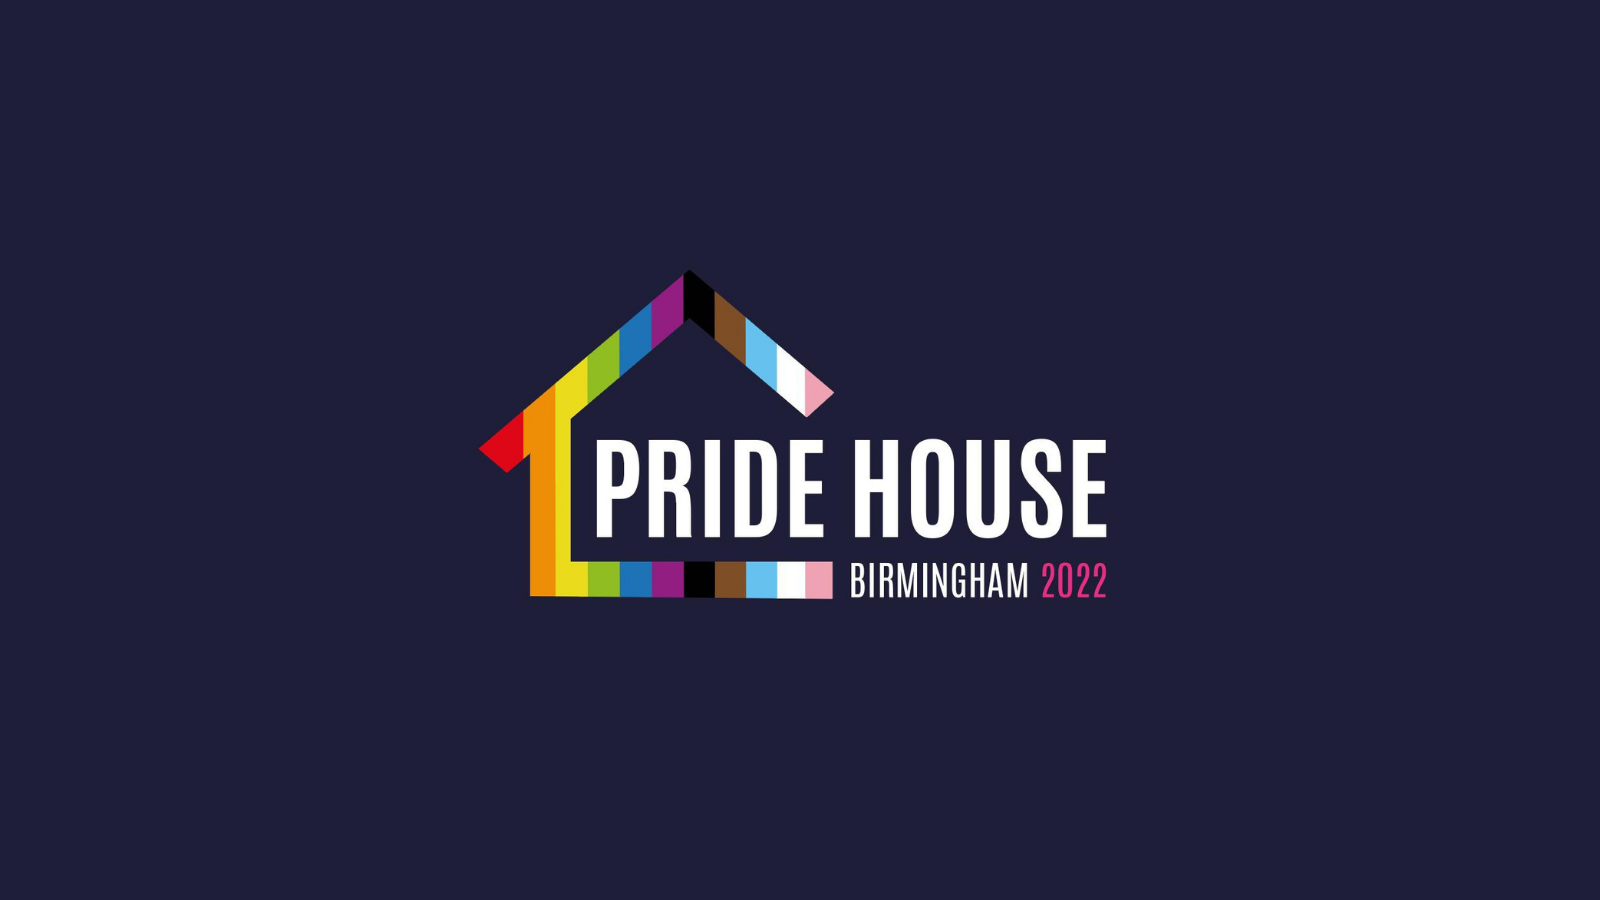 Pride House Birmingham has been launched for the Birmingham 2022 Commonwealth Games ©Pride House